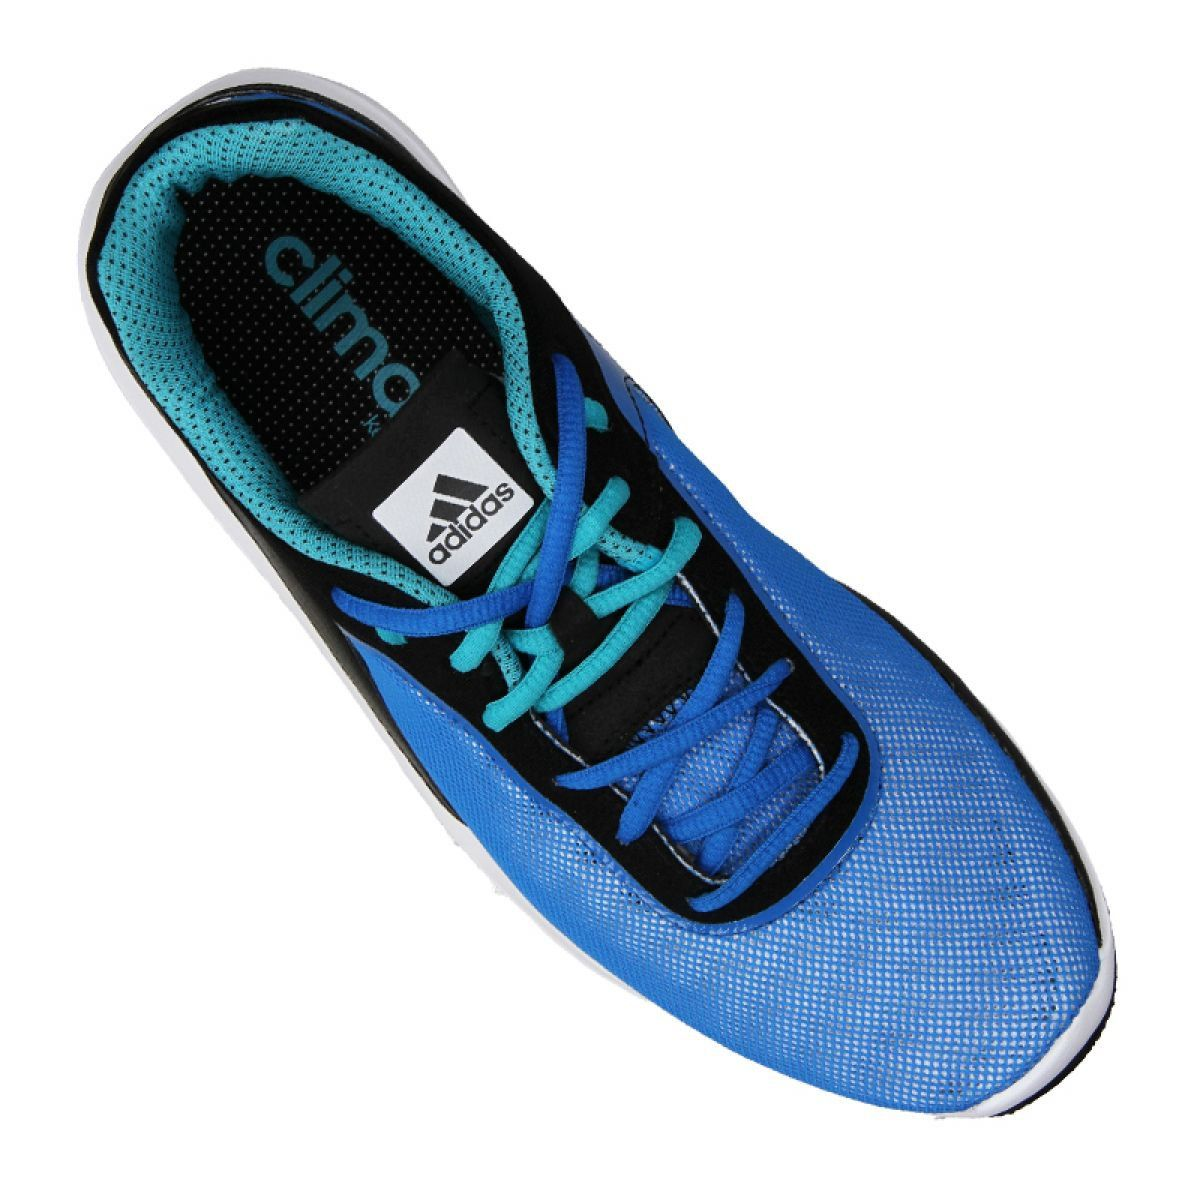 Buty Adidas Adipure 360 3 Chill Af5460 Niebieskie Blue Shoes Shoes Adipure